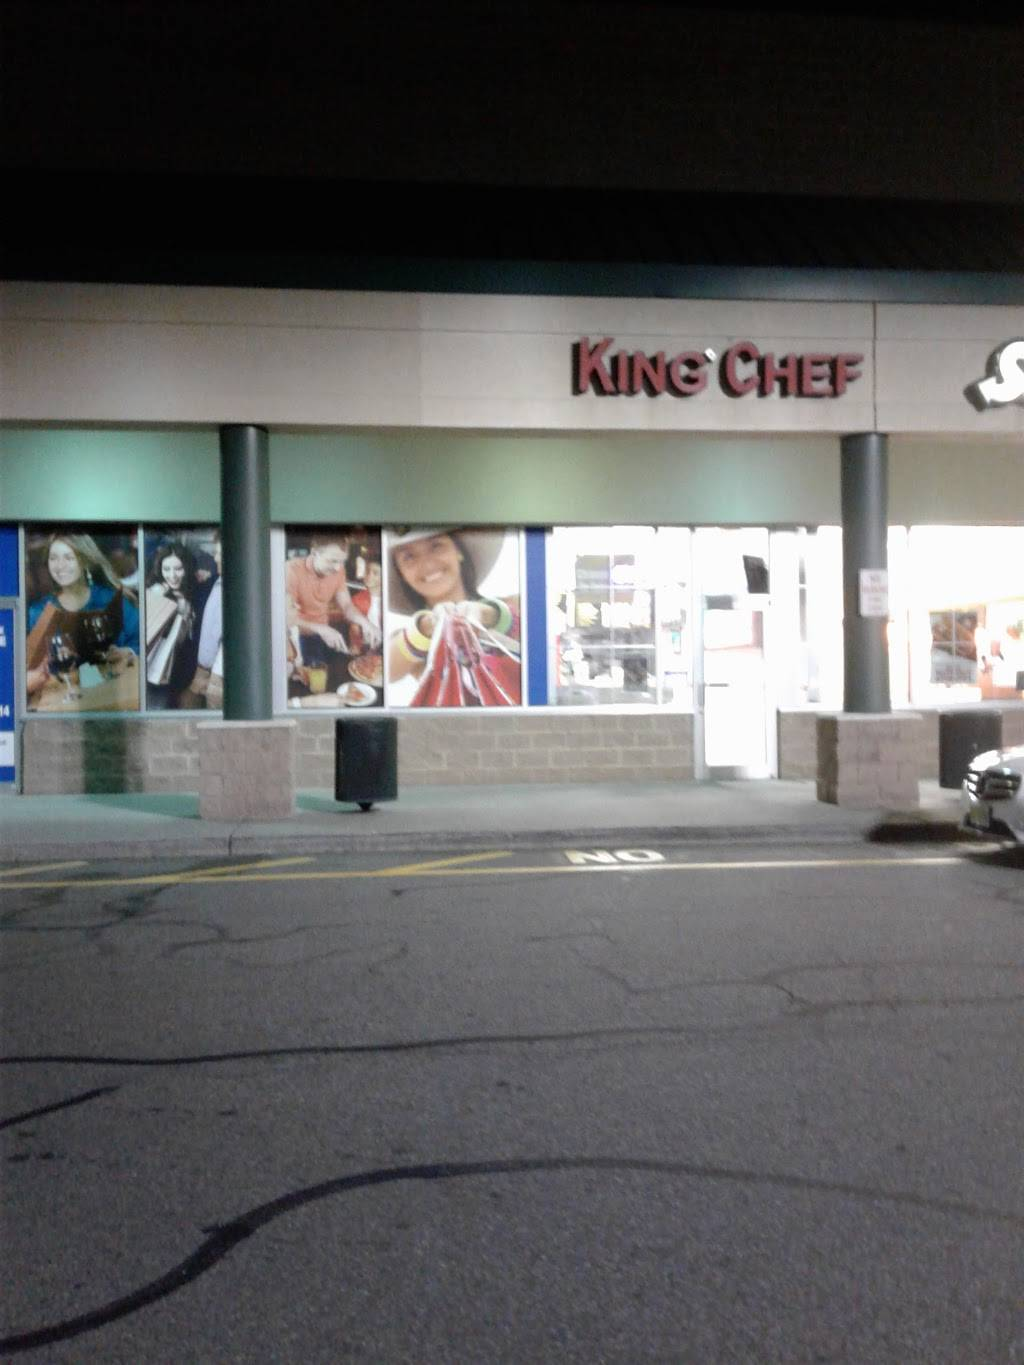 King Chef   restaurant   675 Paterson Ave, Carlstadt, NJ 07072, USA   2019339883 OR +1 201-933-9883